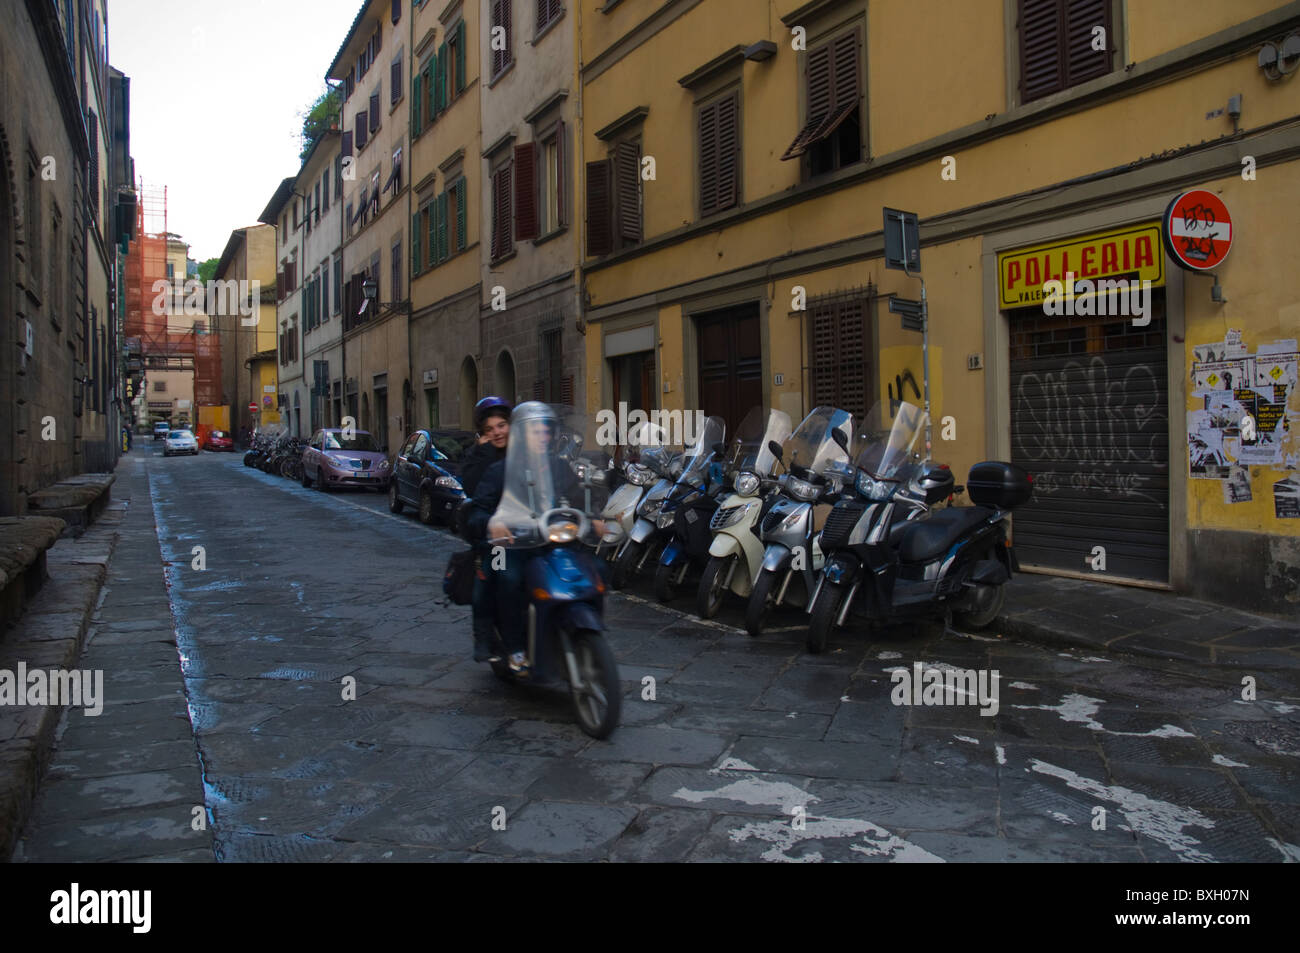 Scooter in Santo Spirito district central Florence (Firenze) Tuscany central Italy Europe Stock Photo